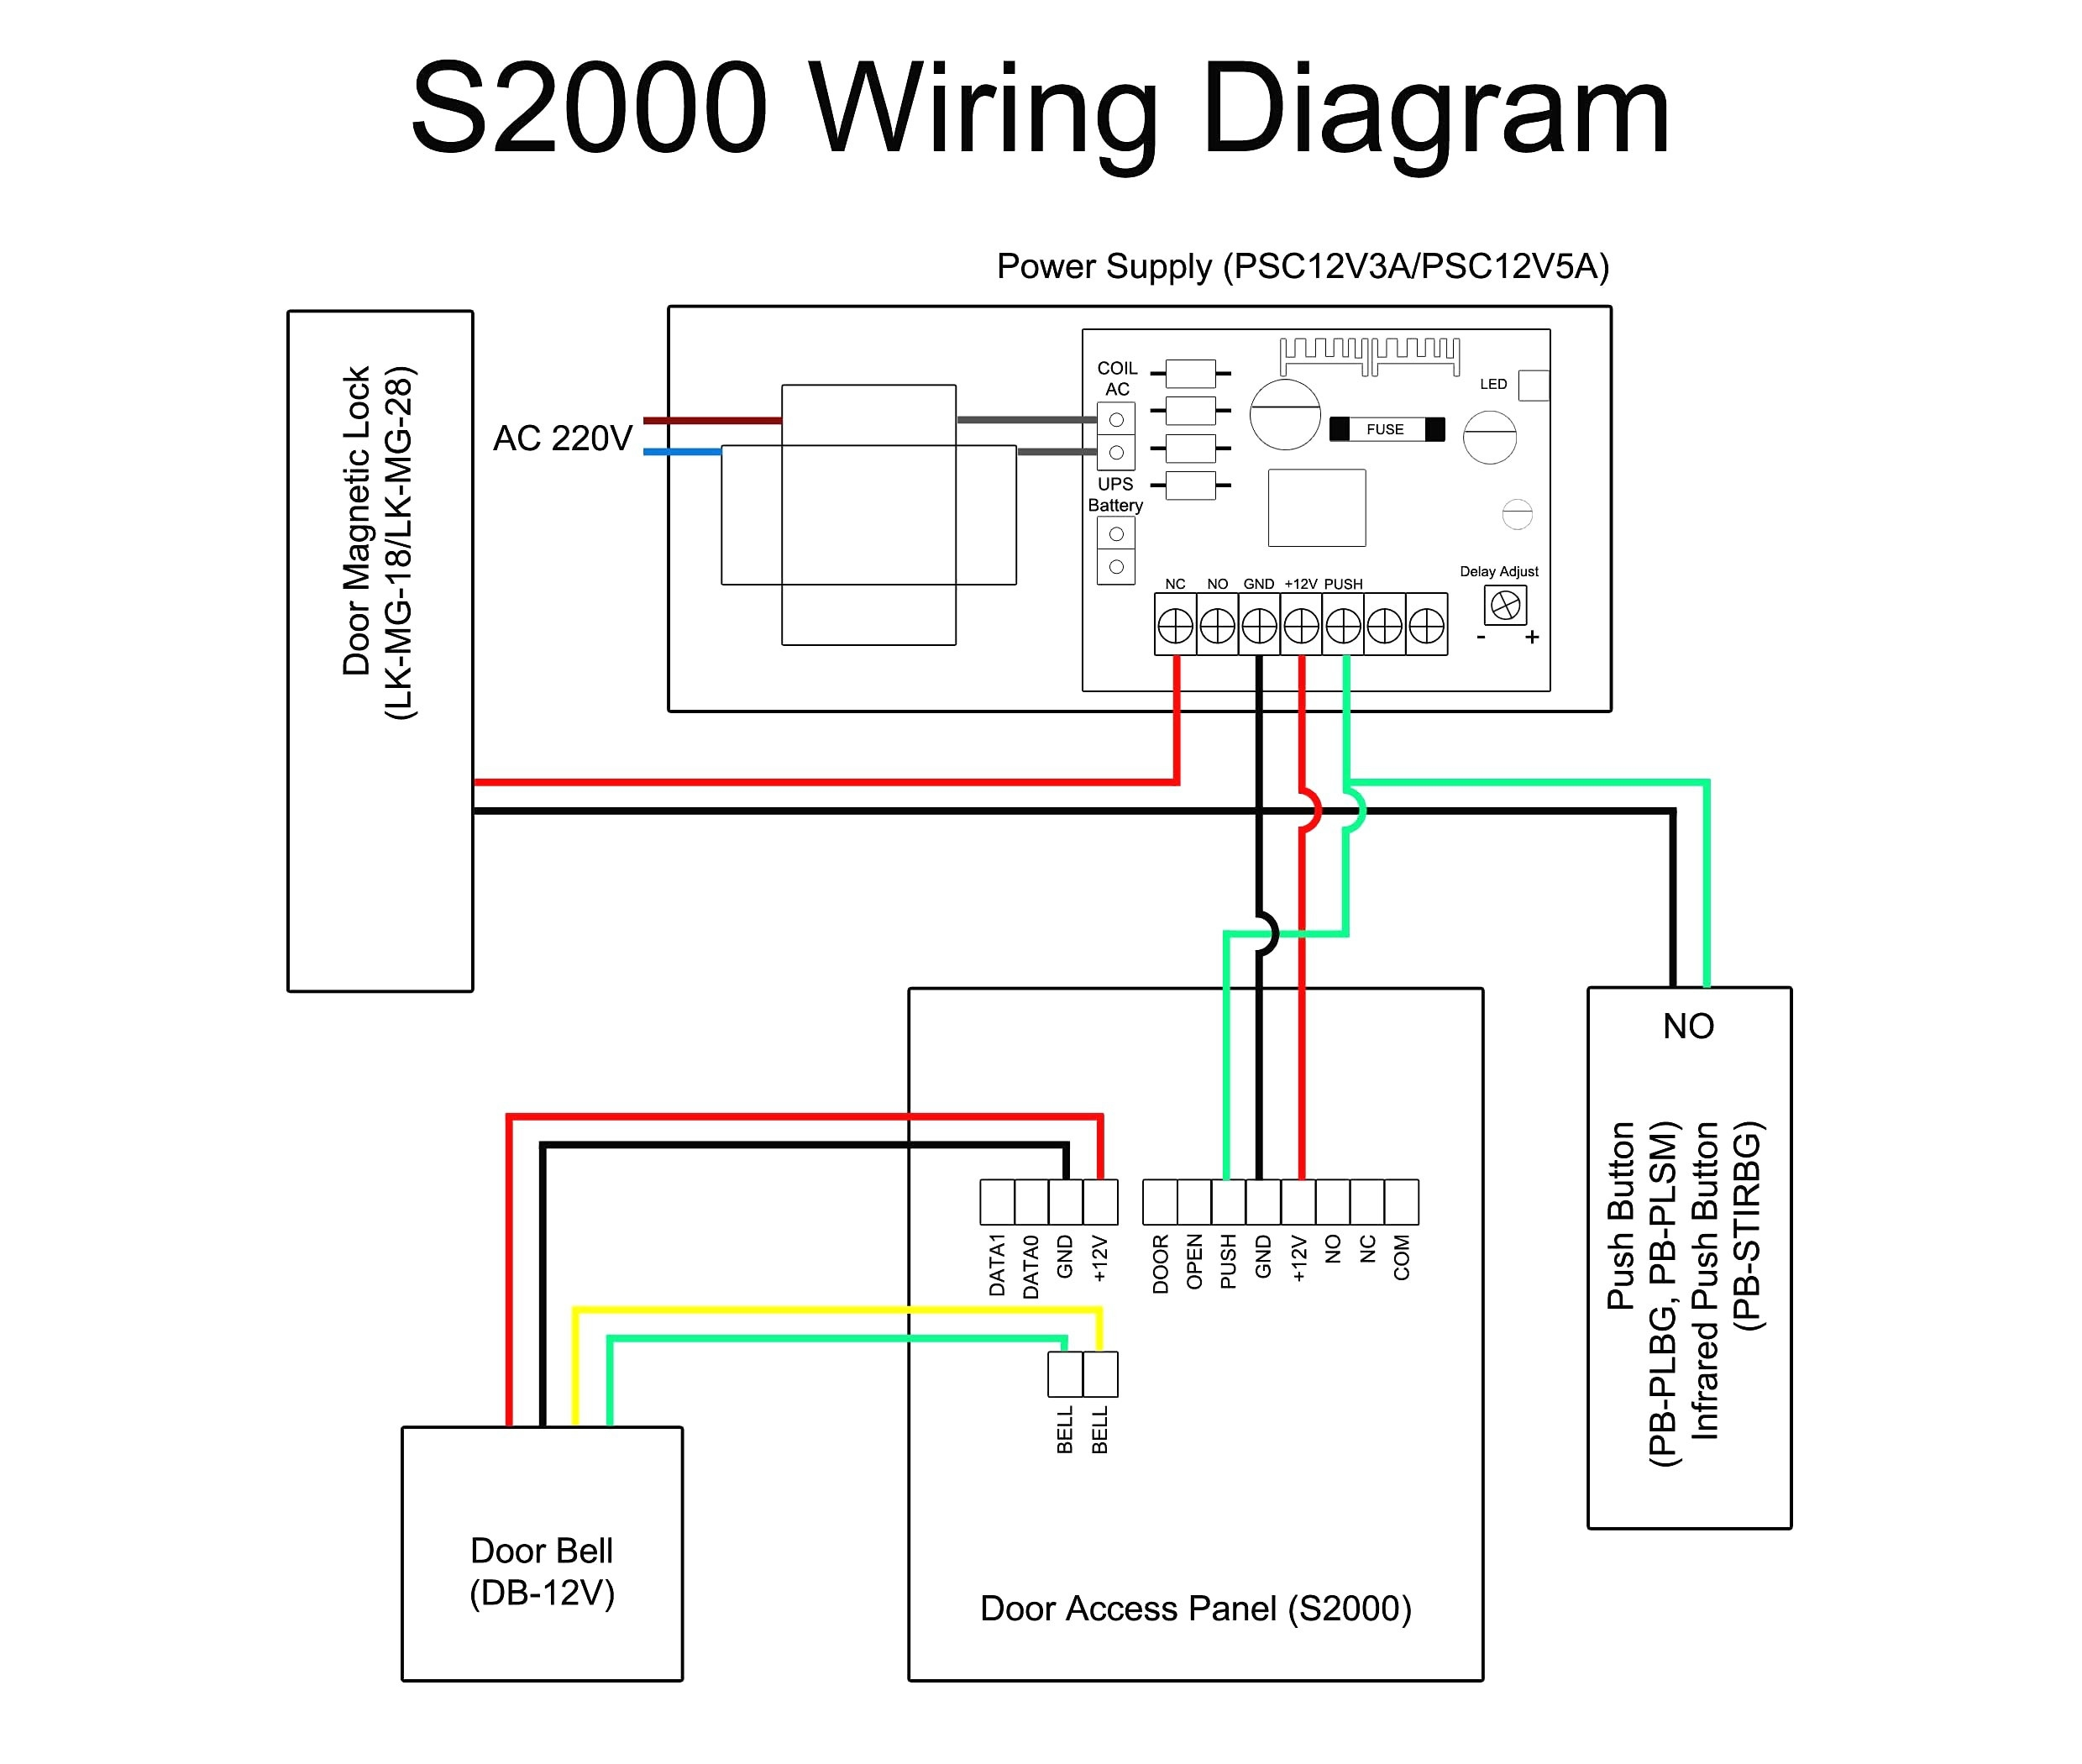 cctv camera wiring diagram pdf wiring diagram Security Camera Wiring